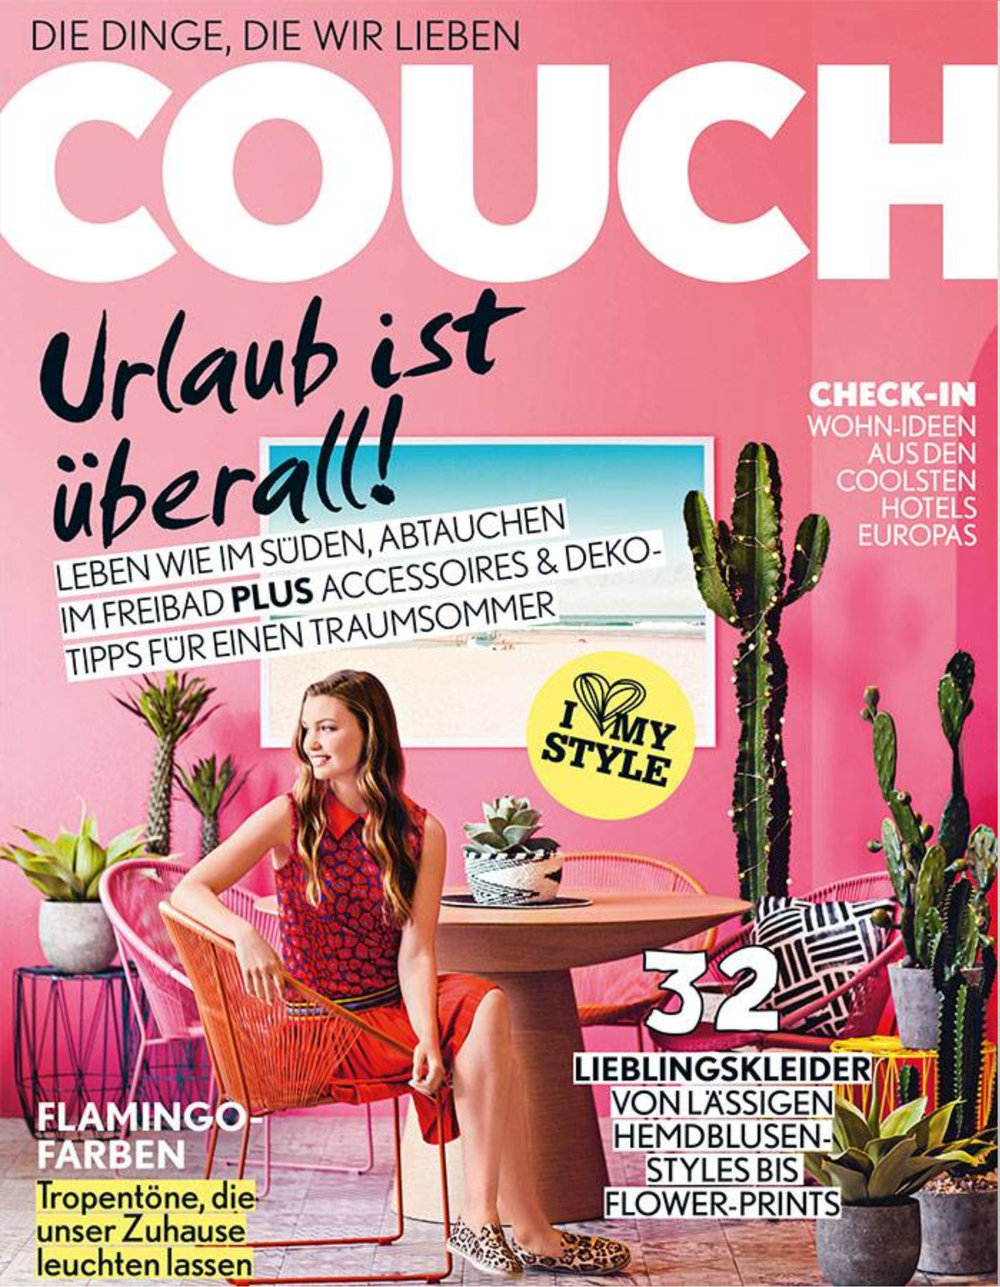 couch-mag 01.jpg